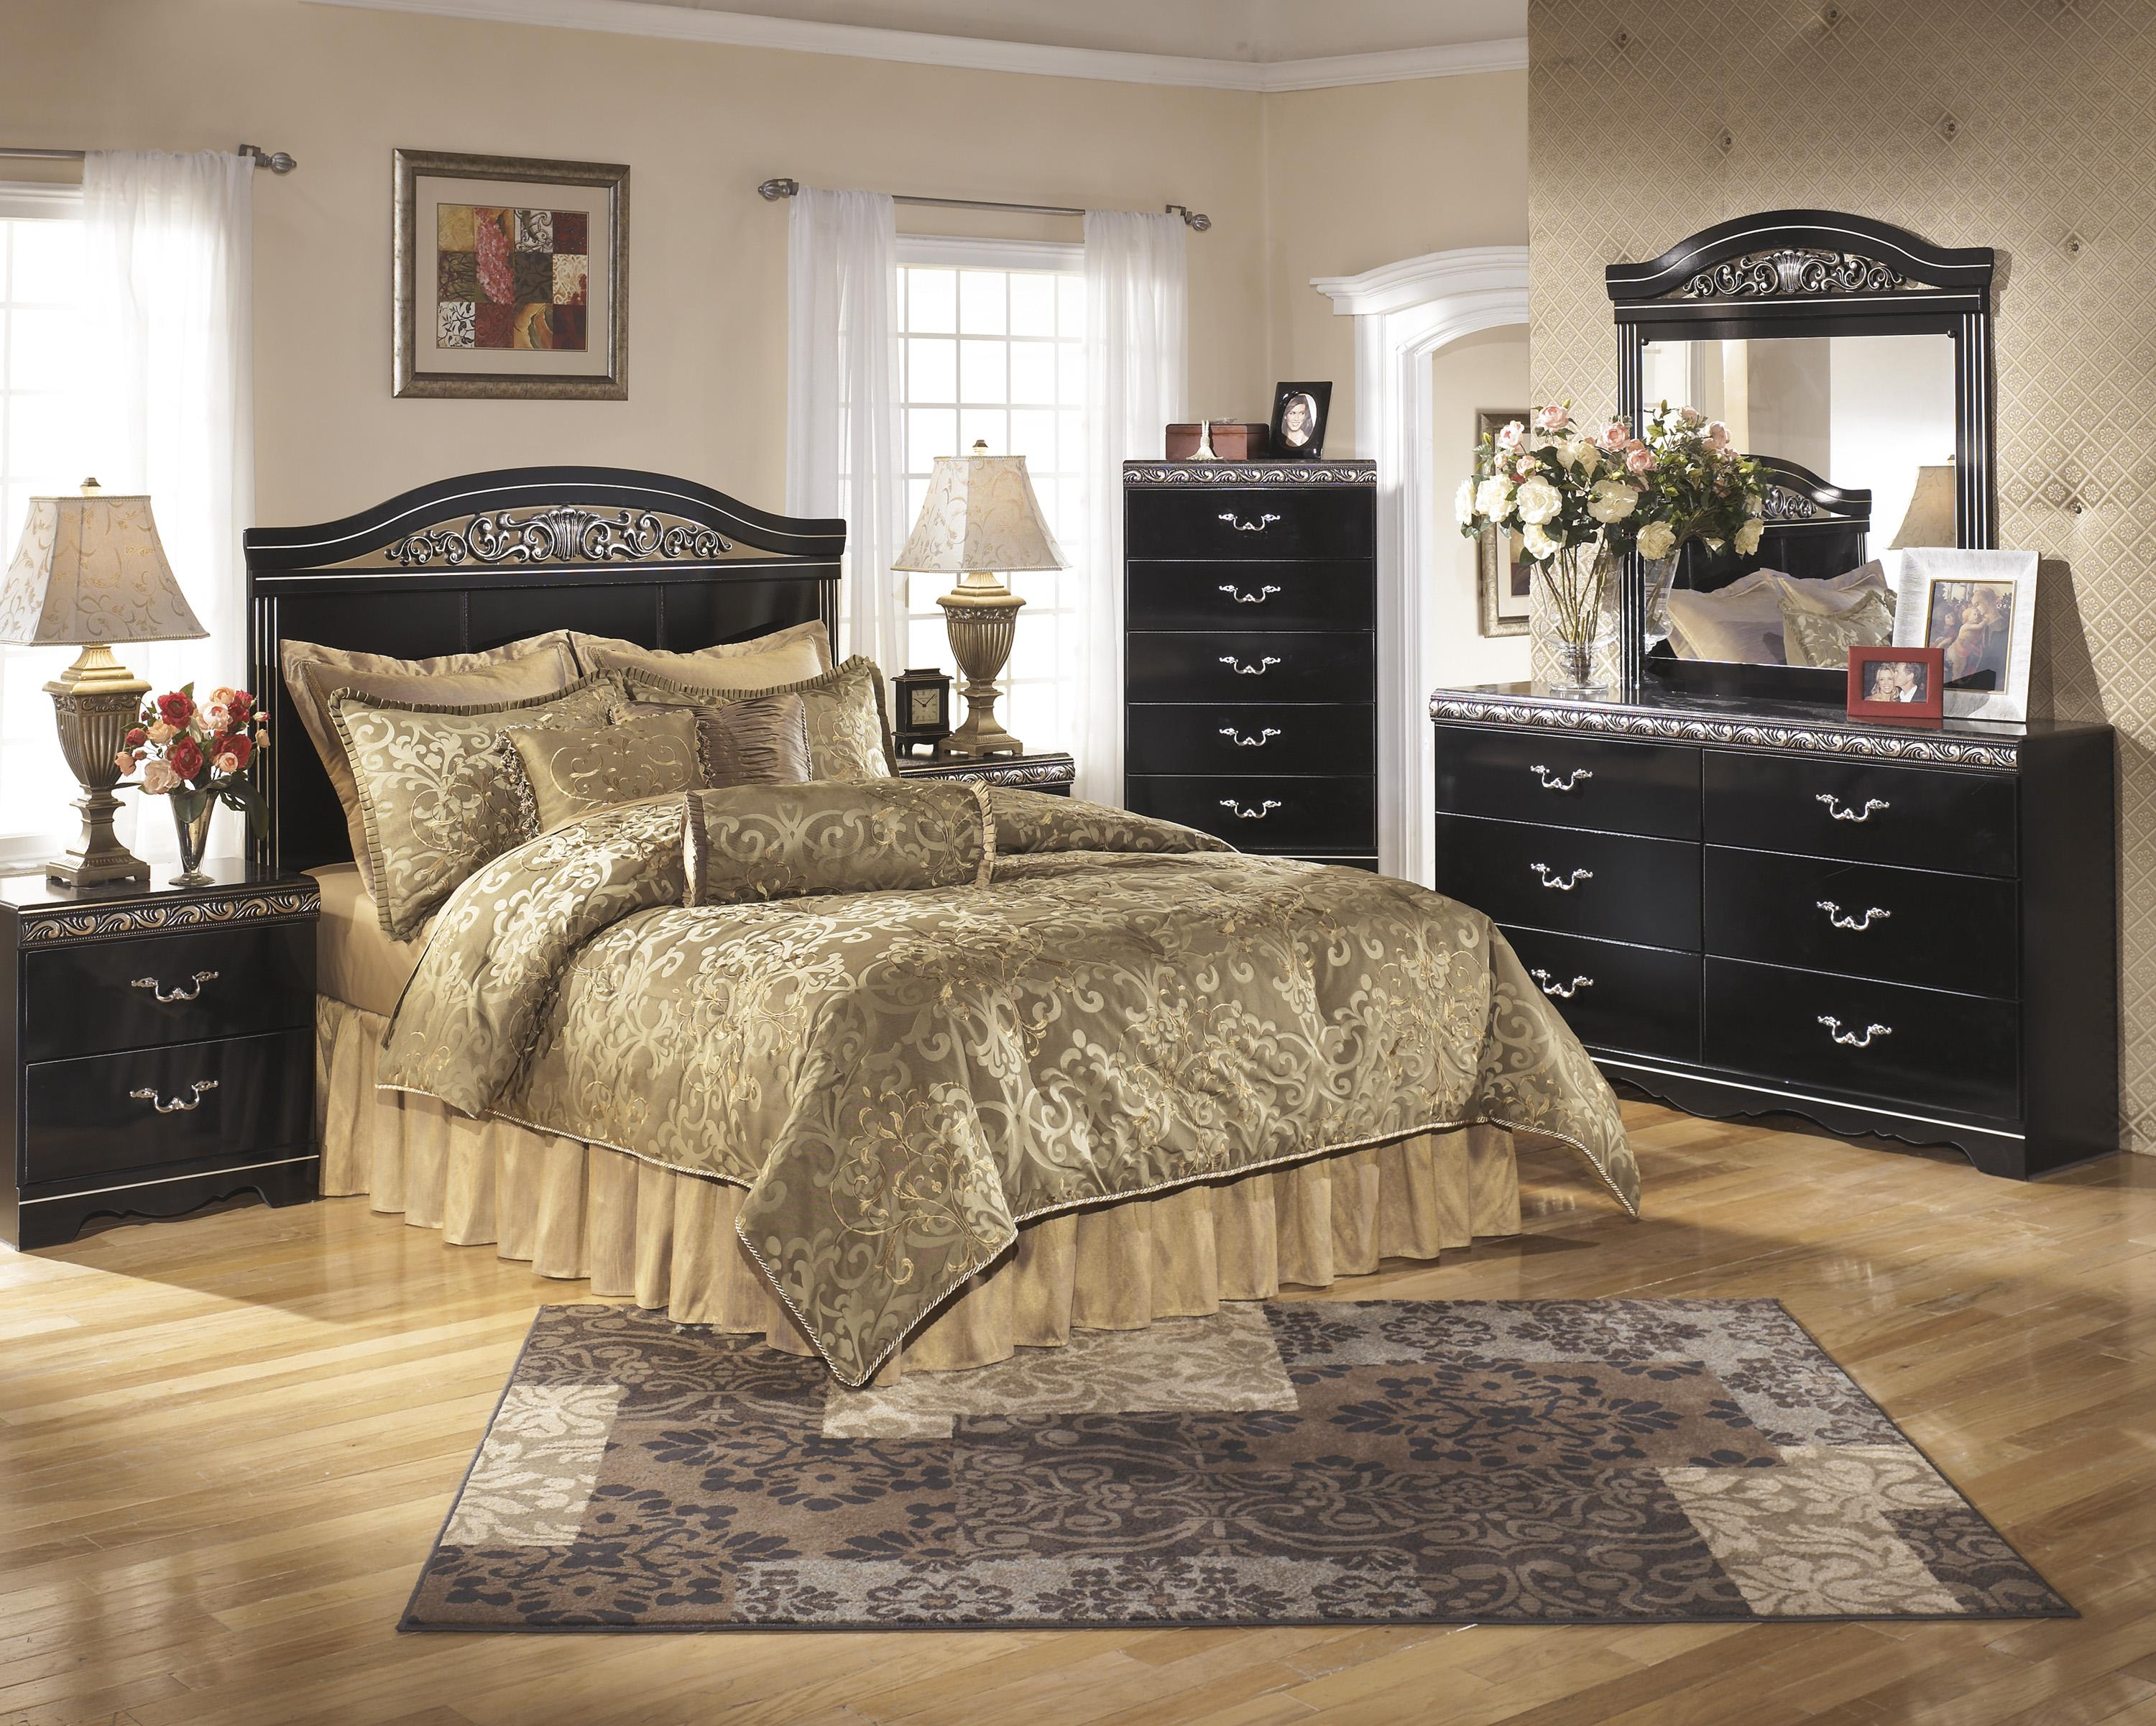 Signature Design by Ashley Constellations Queen/Full Bedroom Group - Item Number: B104 Q Bedroom Group 2